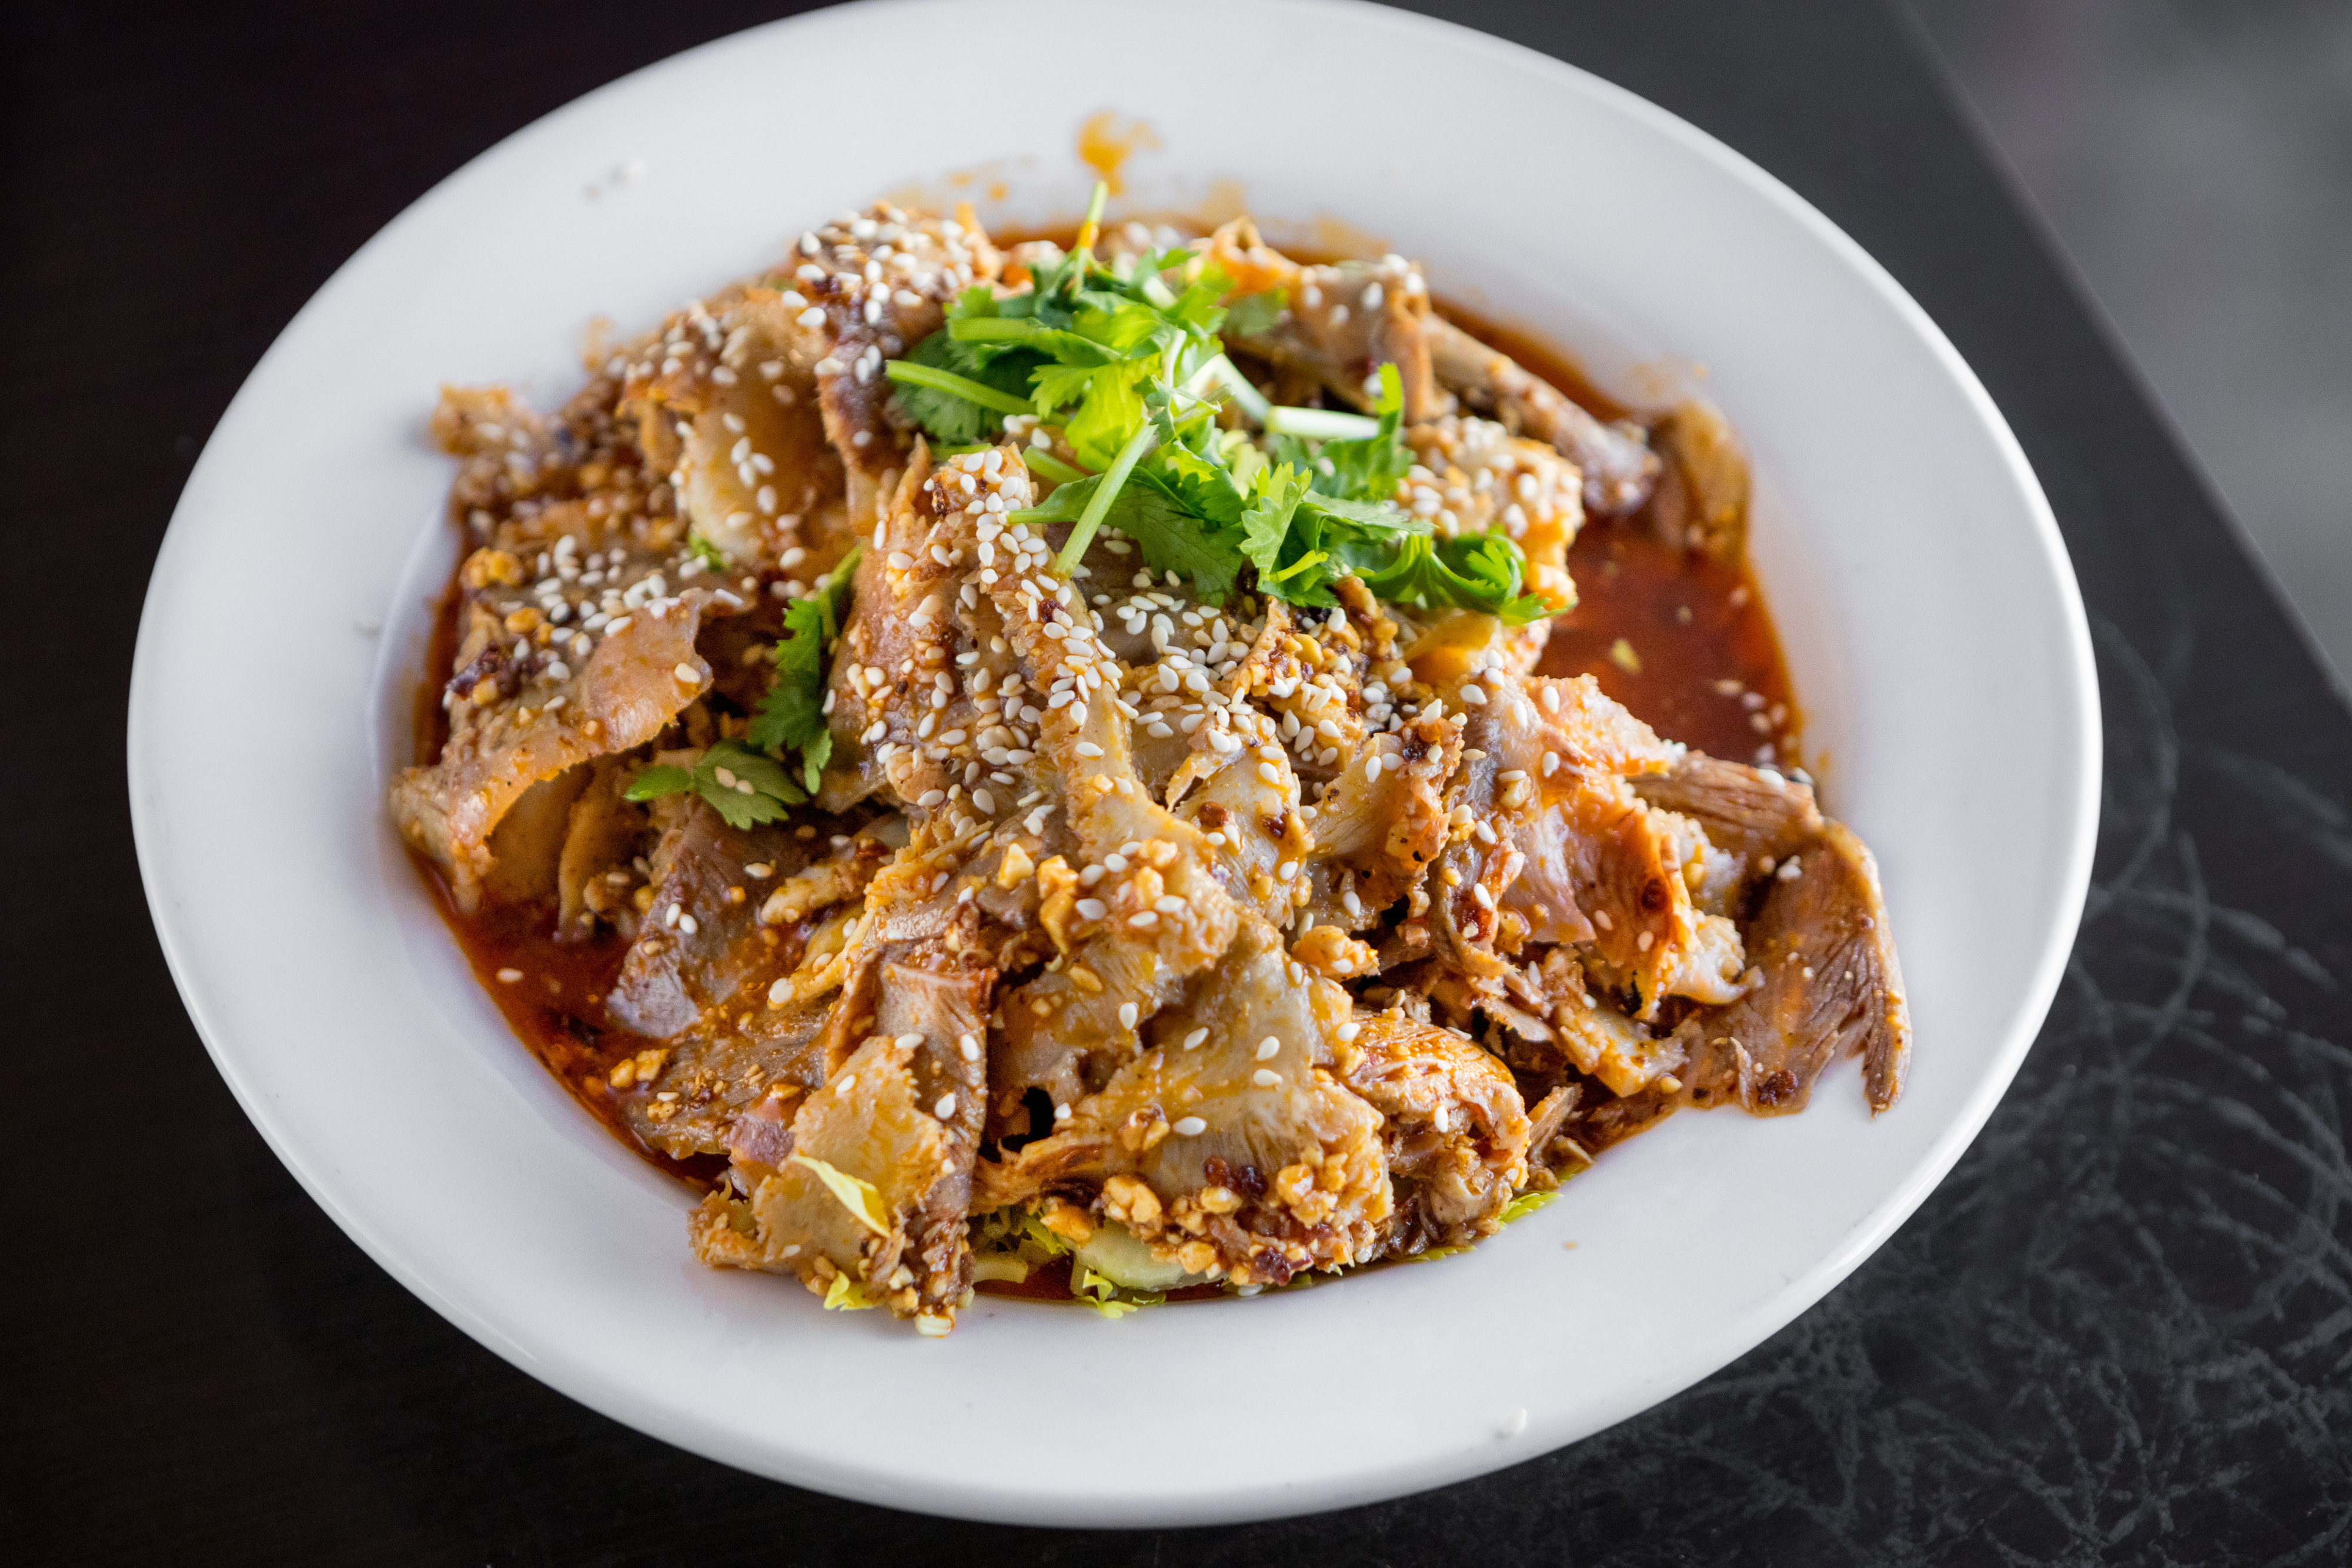 The Best Places To Eat In The San Gabriel Valley - Los Angeles - The ...